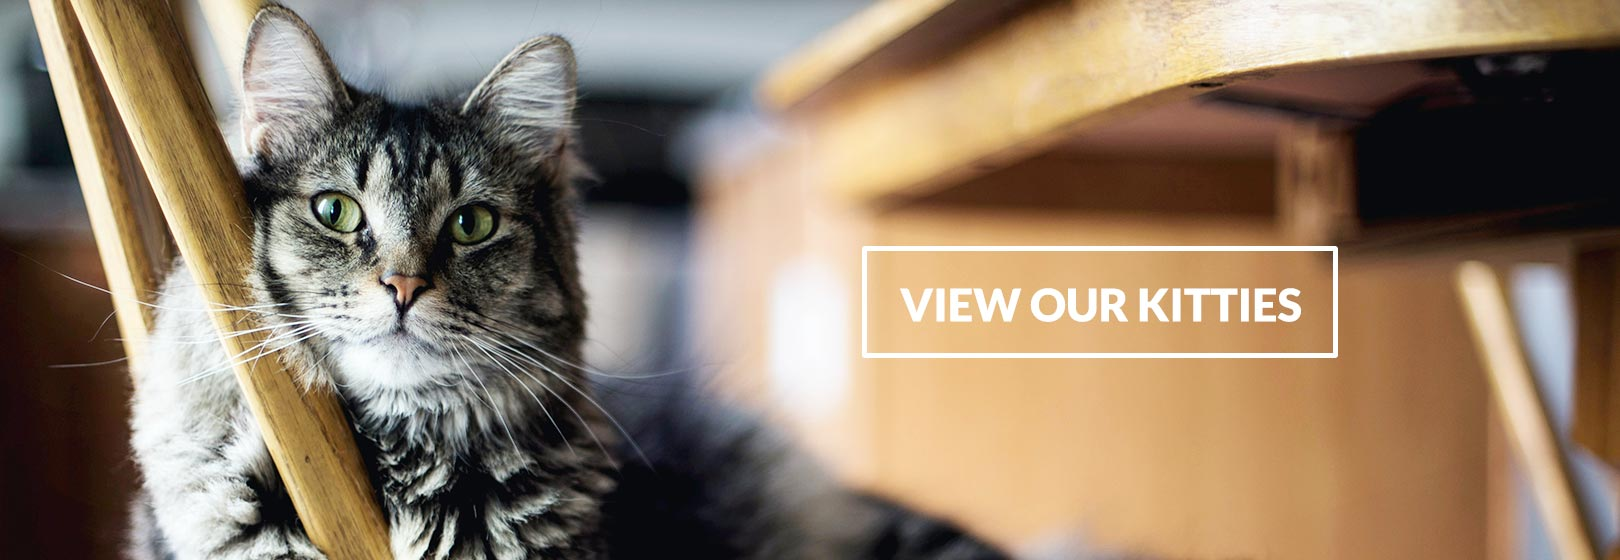 View Our Kitties